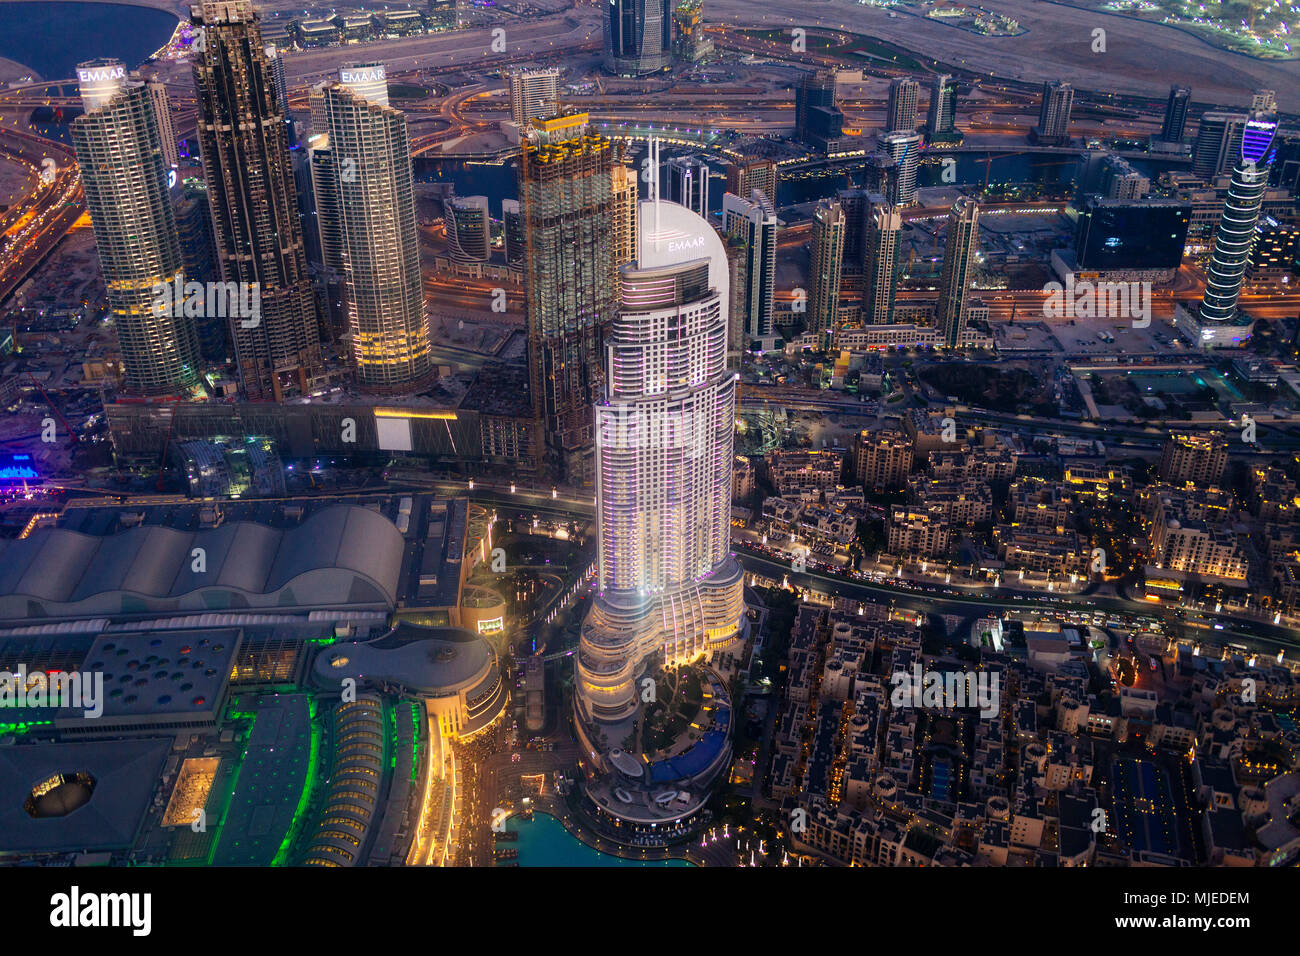 Dubai from above - Stock Image